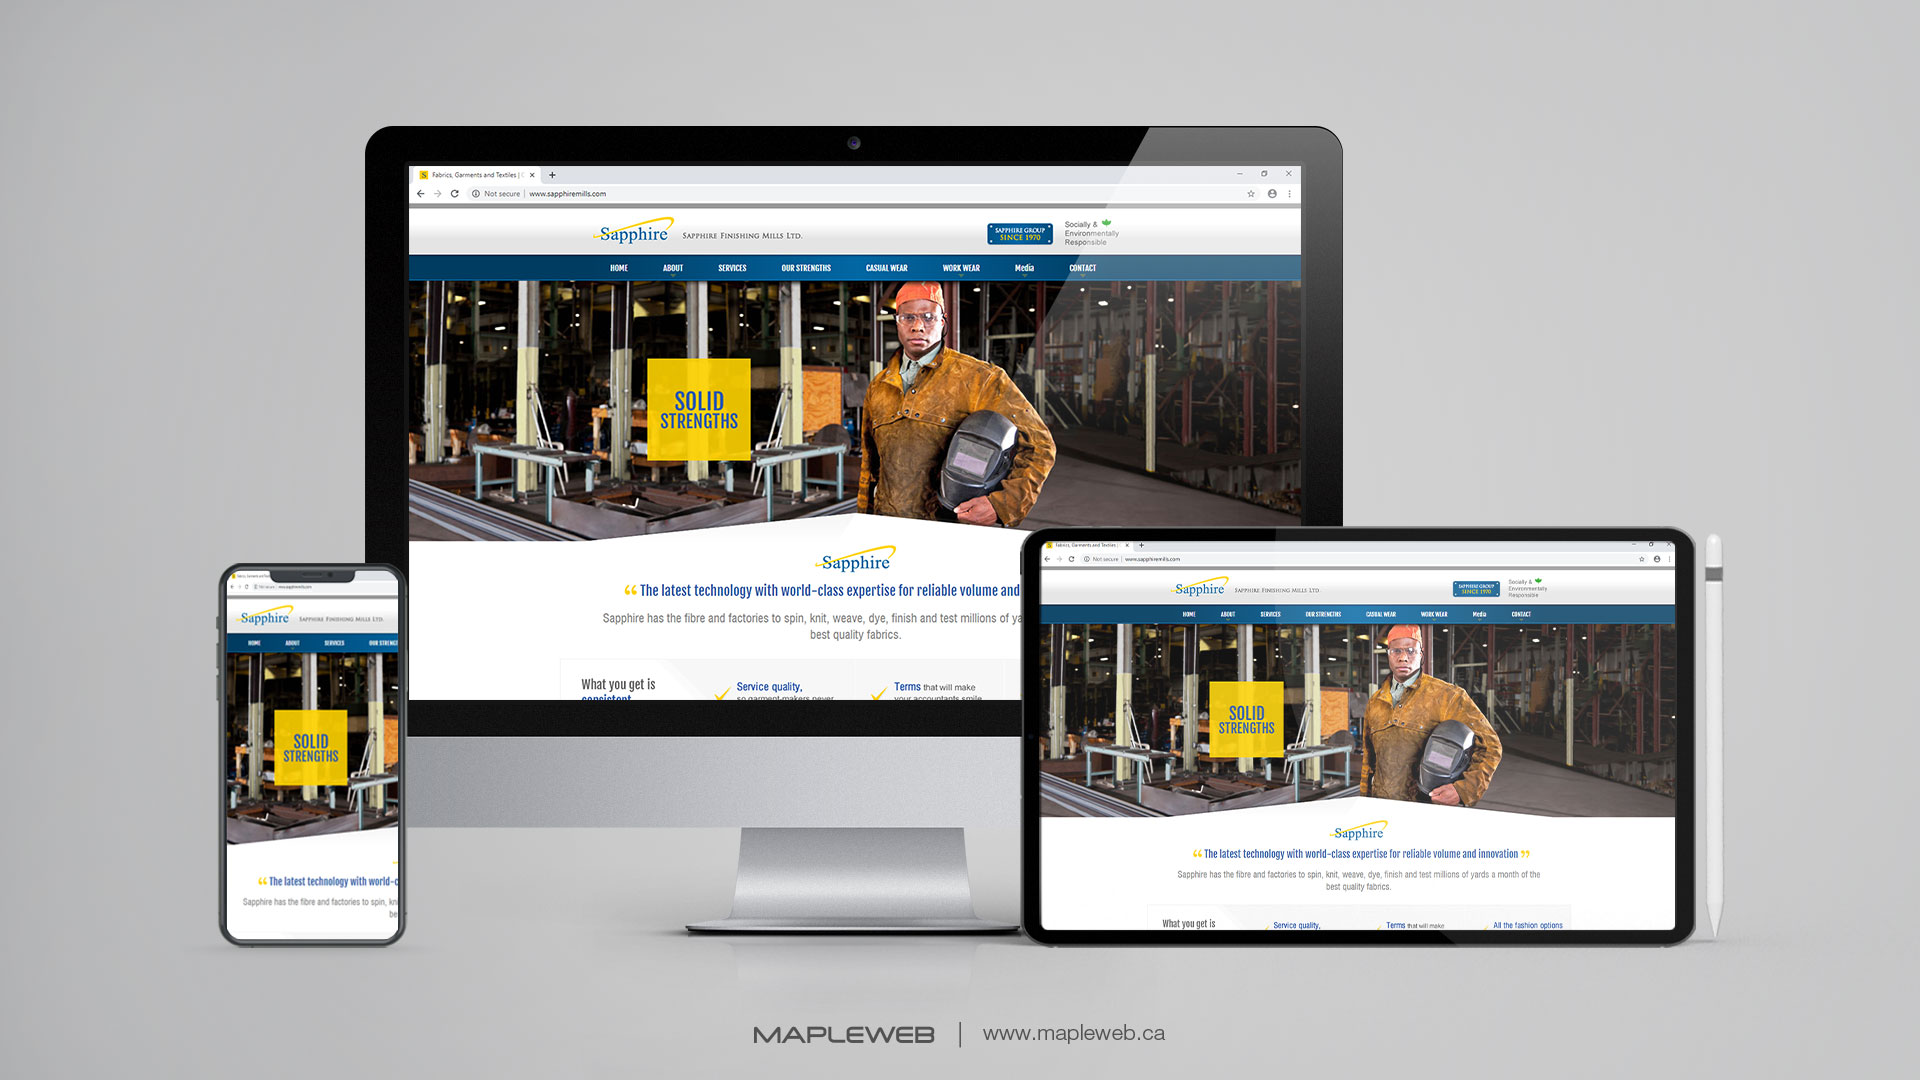 sapphire-Vancouver-web-design-Vancouver-web-development-by-mapleweb-canada-multiple-devices-display